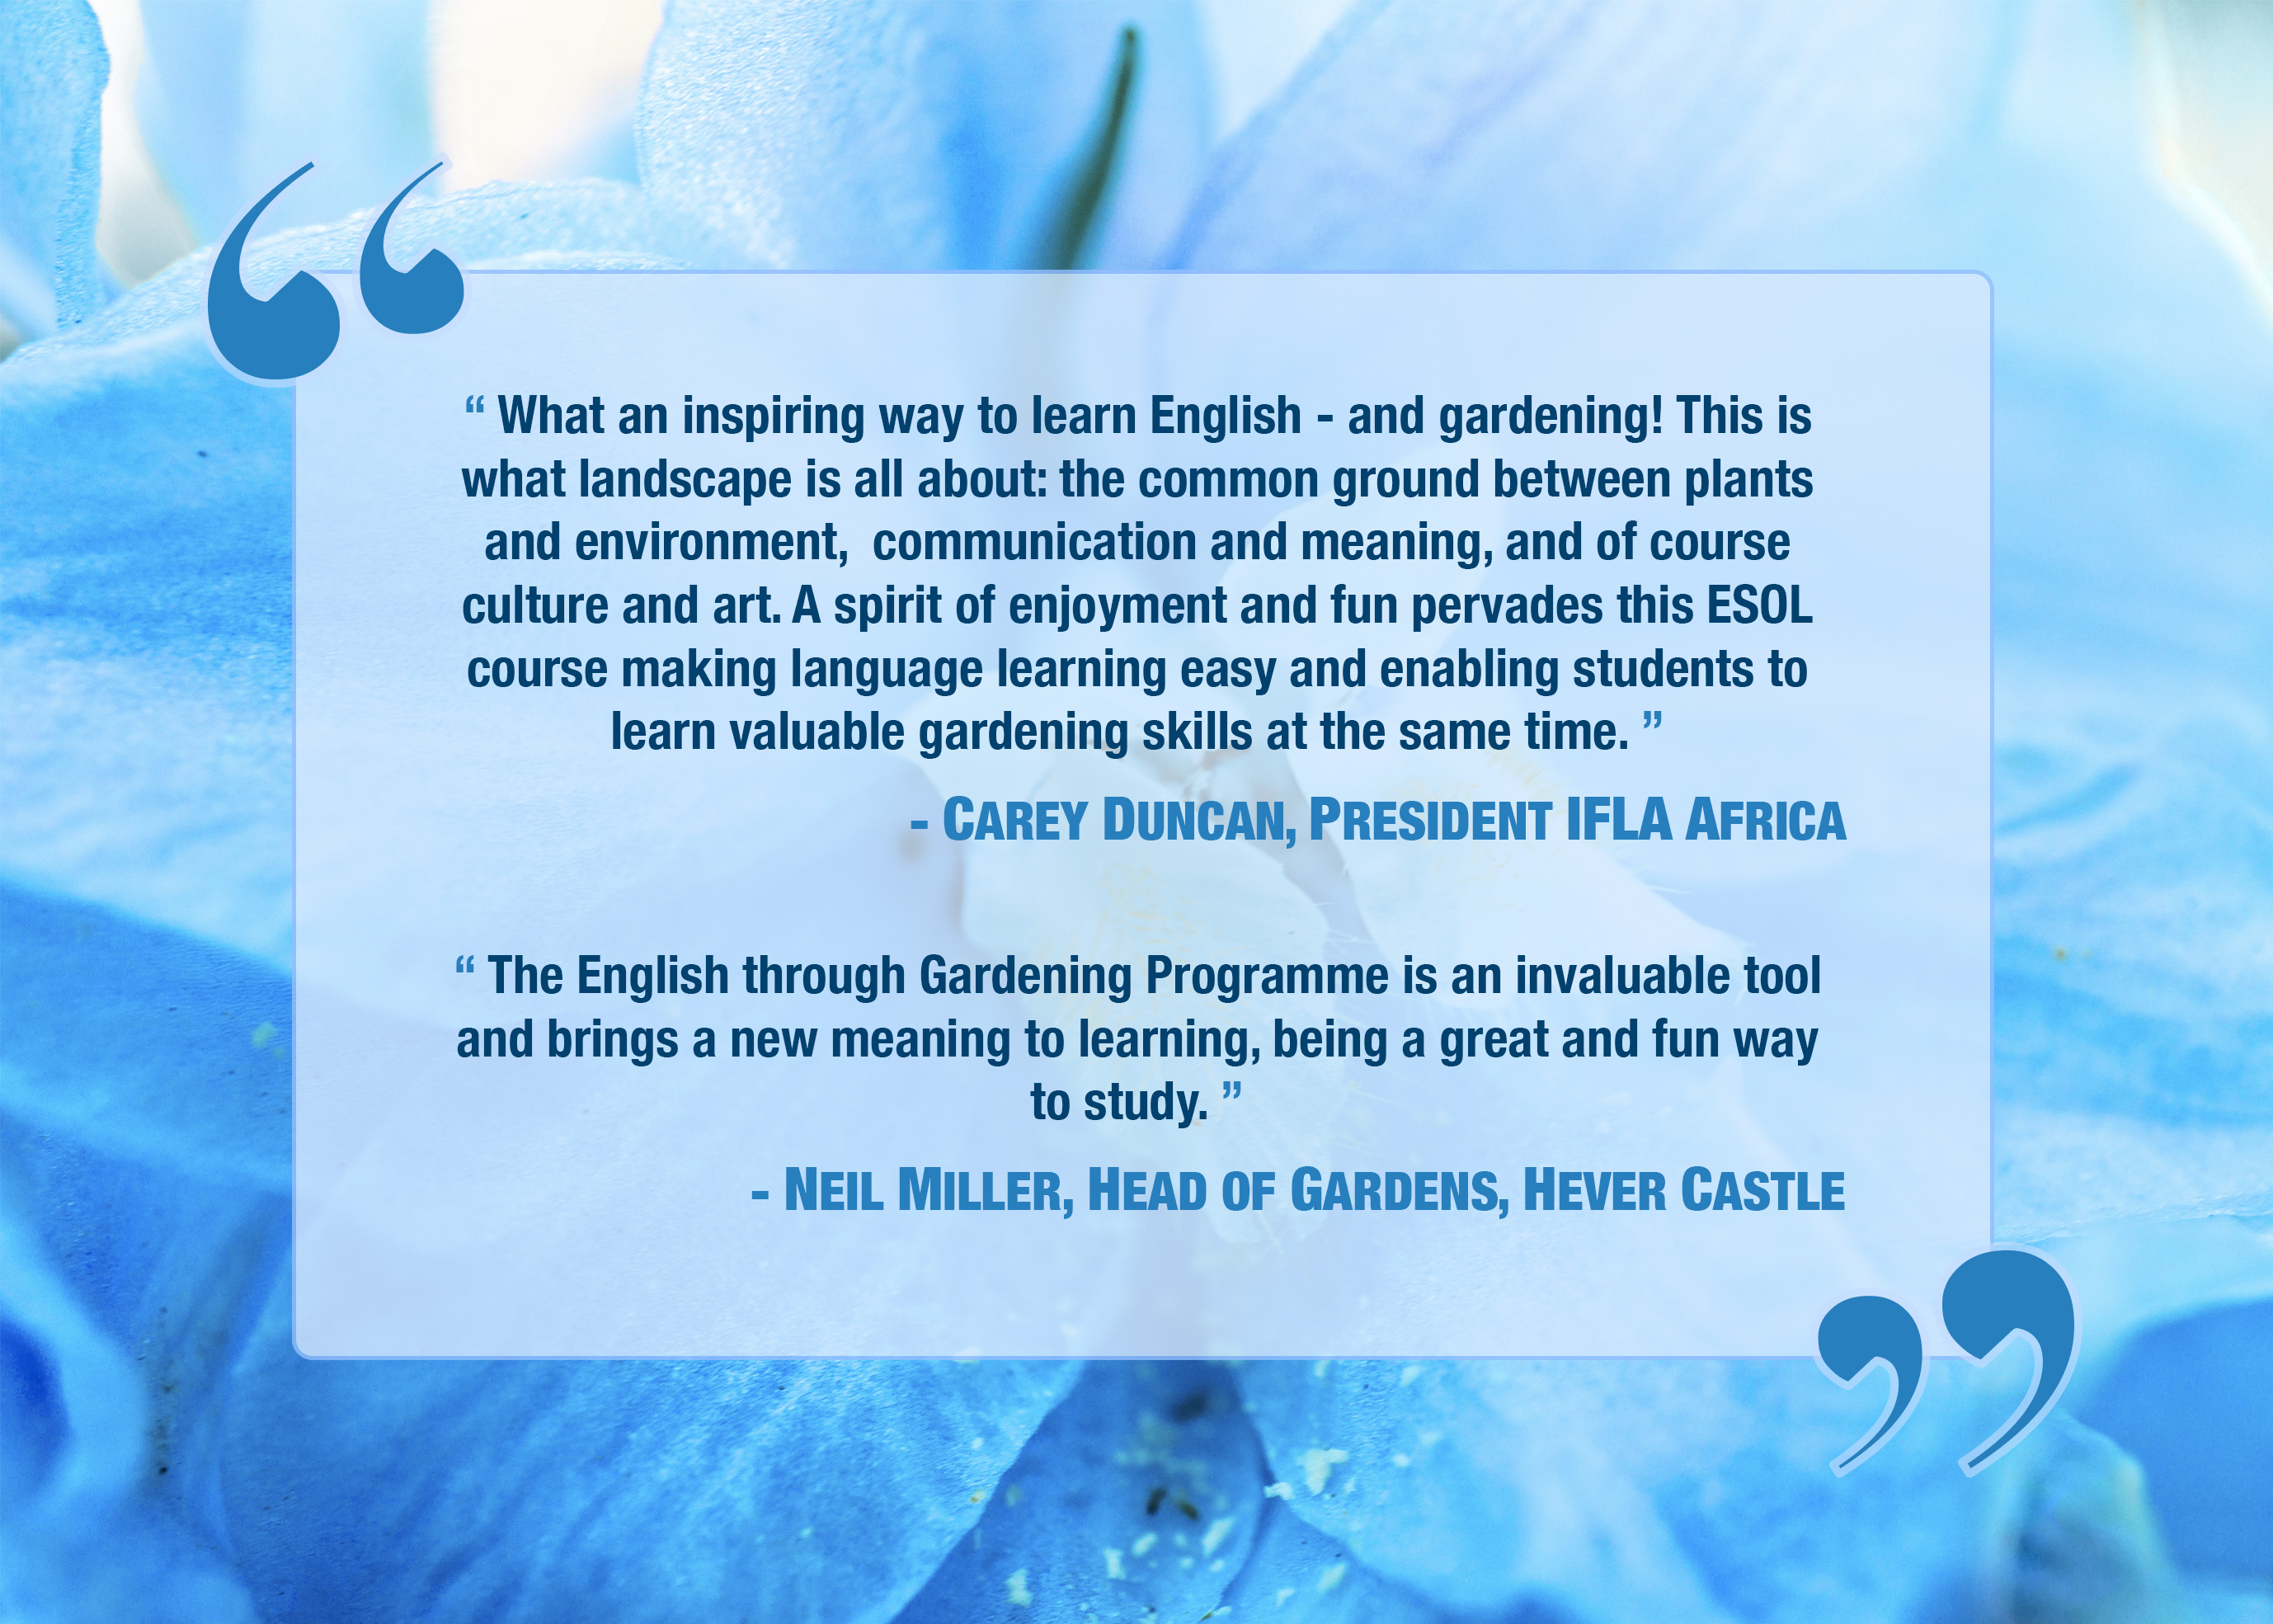 """"""" What an inspiring way to learn English - and gardening! This is what landscape is all about: the common ground between plants and environment, communication and meaning, and of course culture and art. A spirit of enjoyment and fun pervades this ESOL course making language learning easy and enabling students to learn valuable gardening skills at the same time. """" - CAREY DUNCAN, PRESIDENT IFLA AFRICA """" The English through Gardening Programme is an invaluable tool and brings a new meaning to learning, being a great and fun way to study. """" - NEIL MILLER, HEAD OF GARDENS, HEVER CASTLE"""